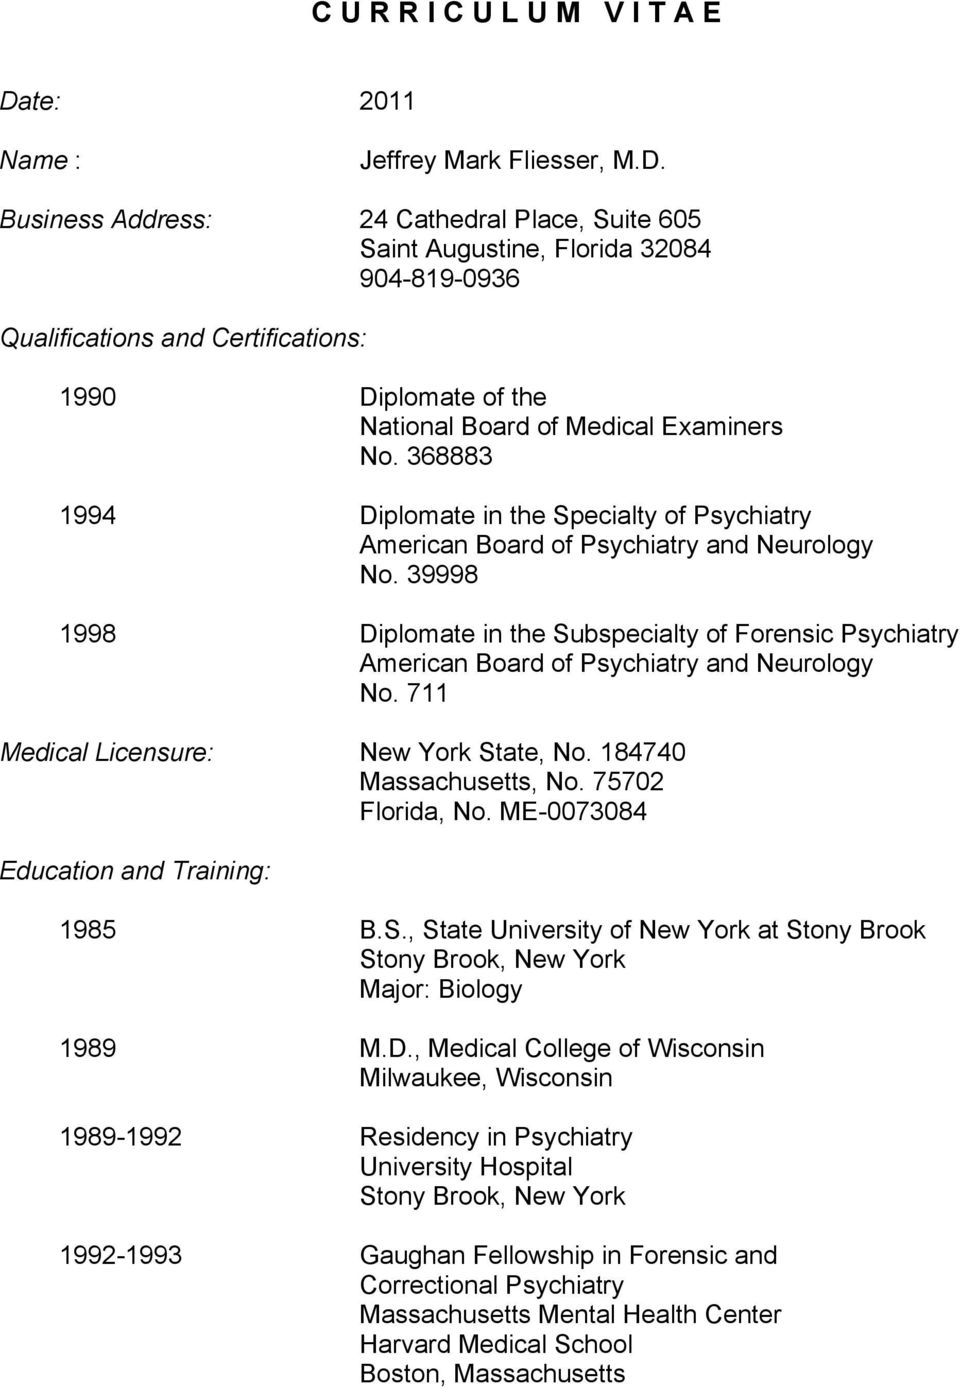 39998 1998 Diplomate in the Subspecialty of Forensic Psychiatry American Board of Psychiatry and Neurology No. 711 Medical Licensure: New York State, No. 184740 Massachusetts, No. 75702 Florida, No.